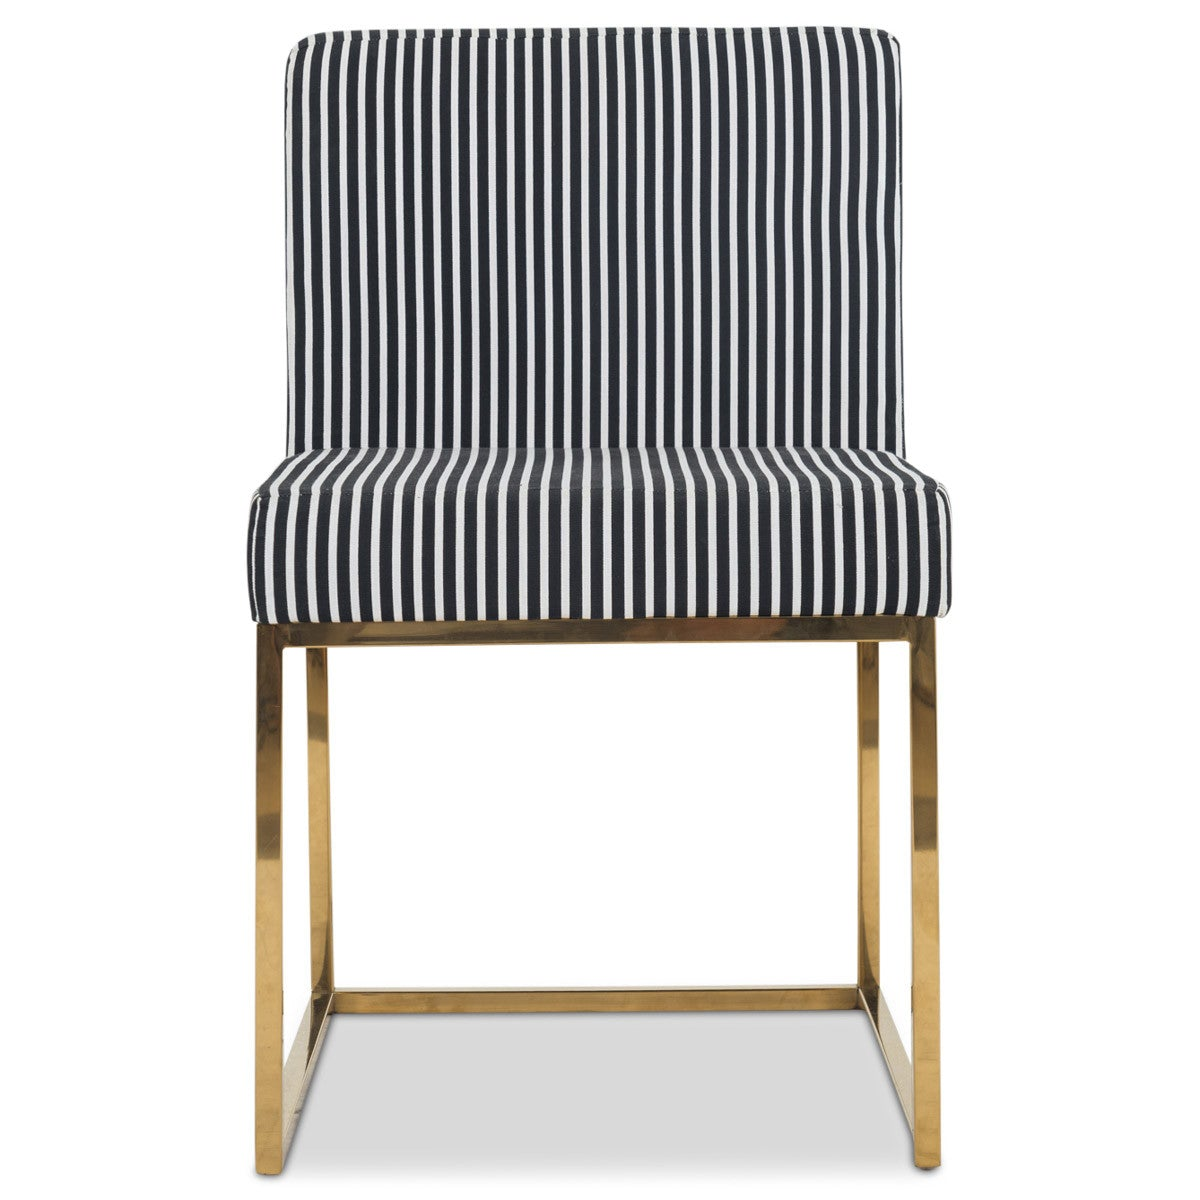 Amazing 007 Dining Chair In Black And White Stripes